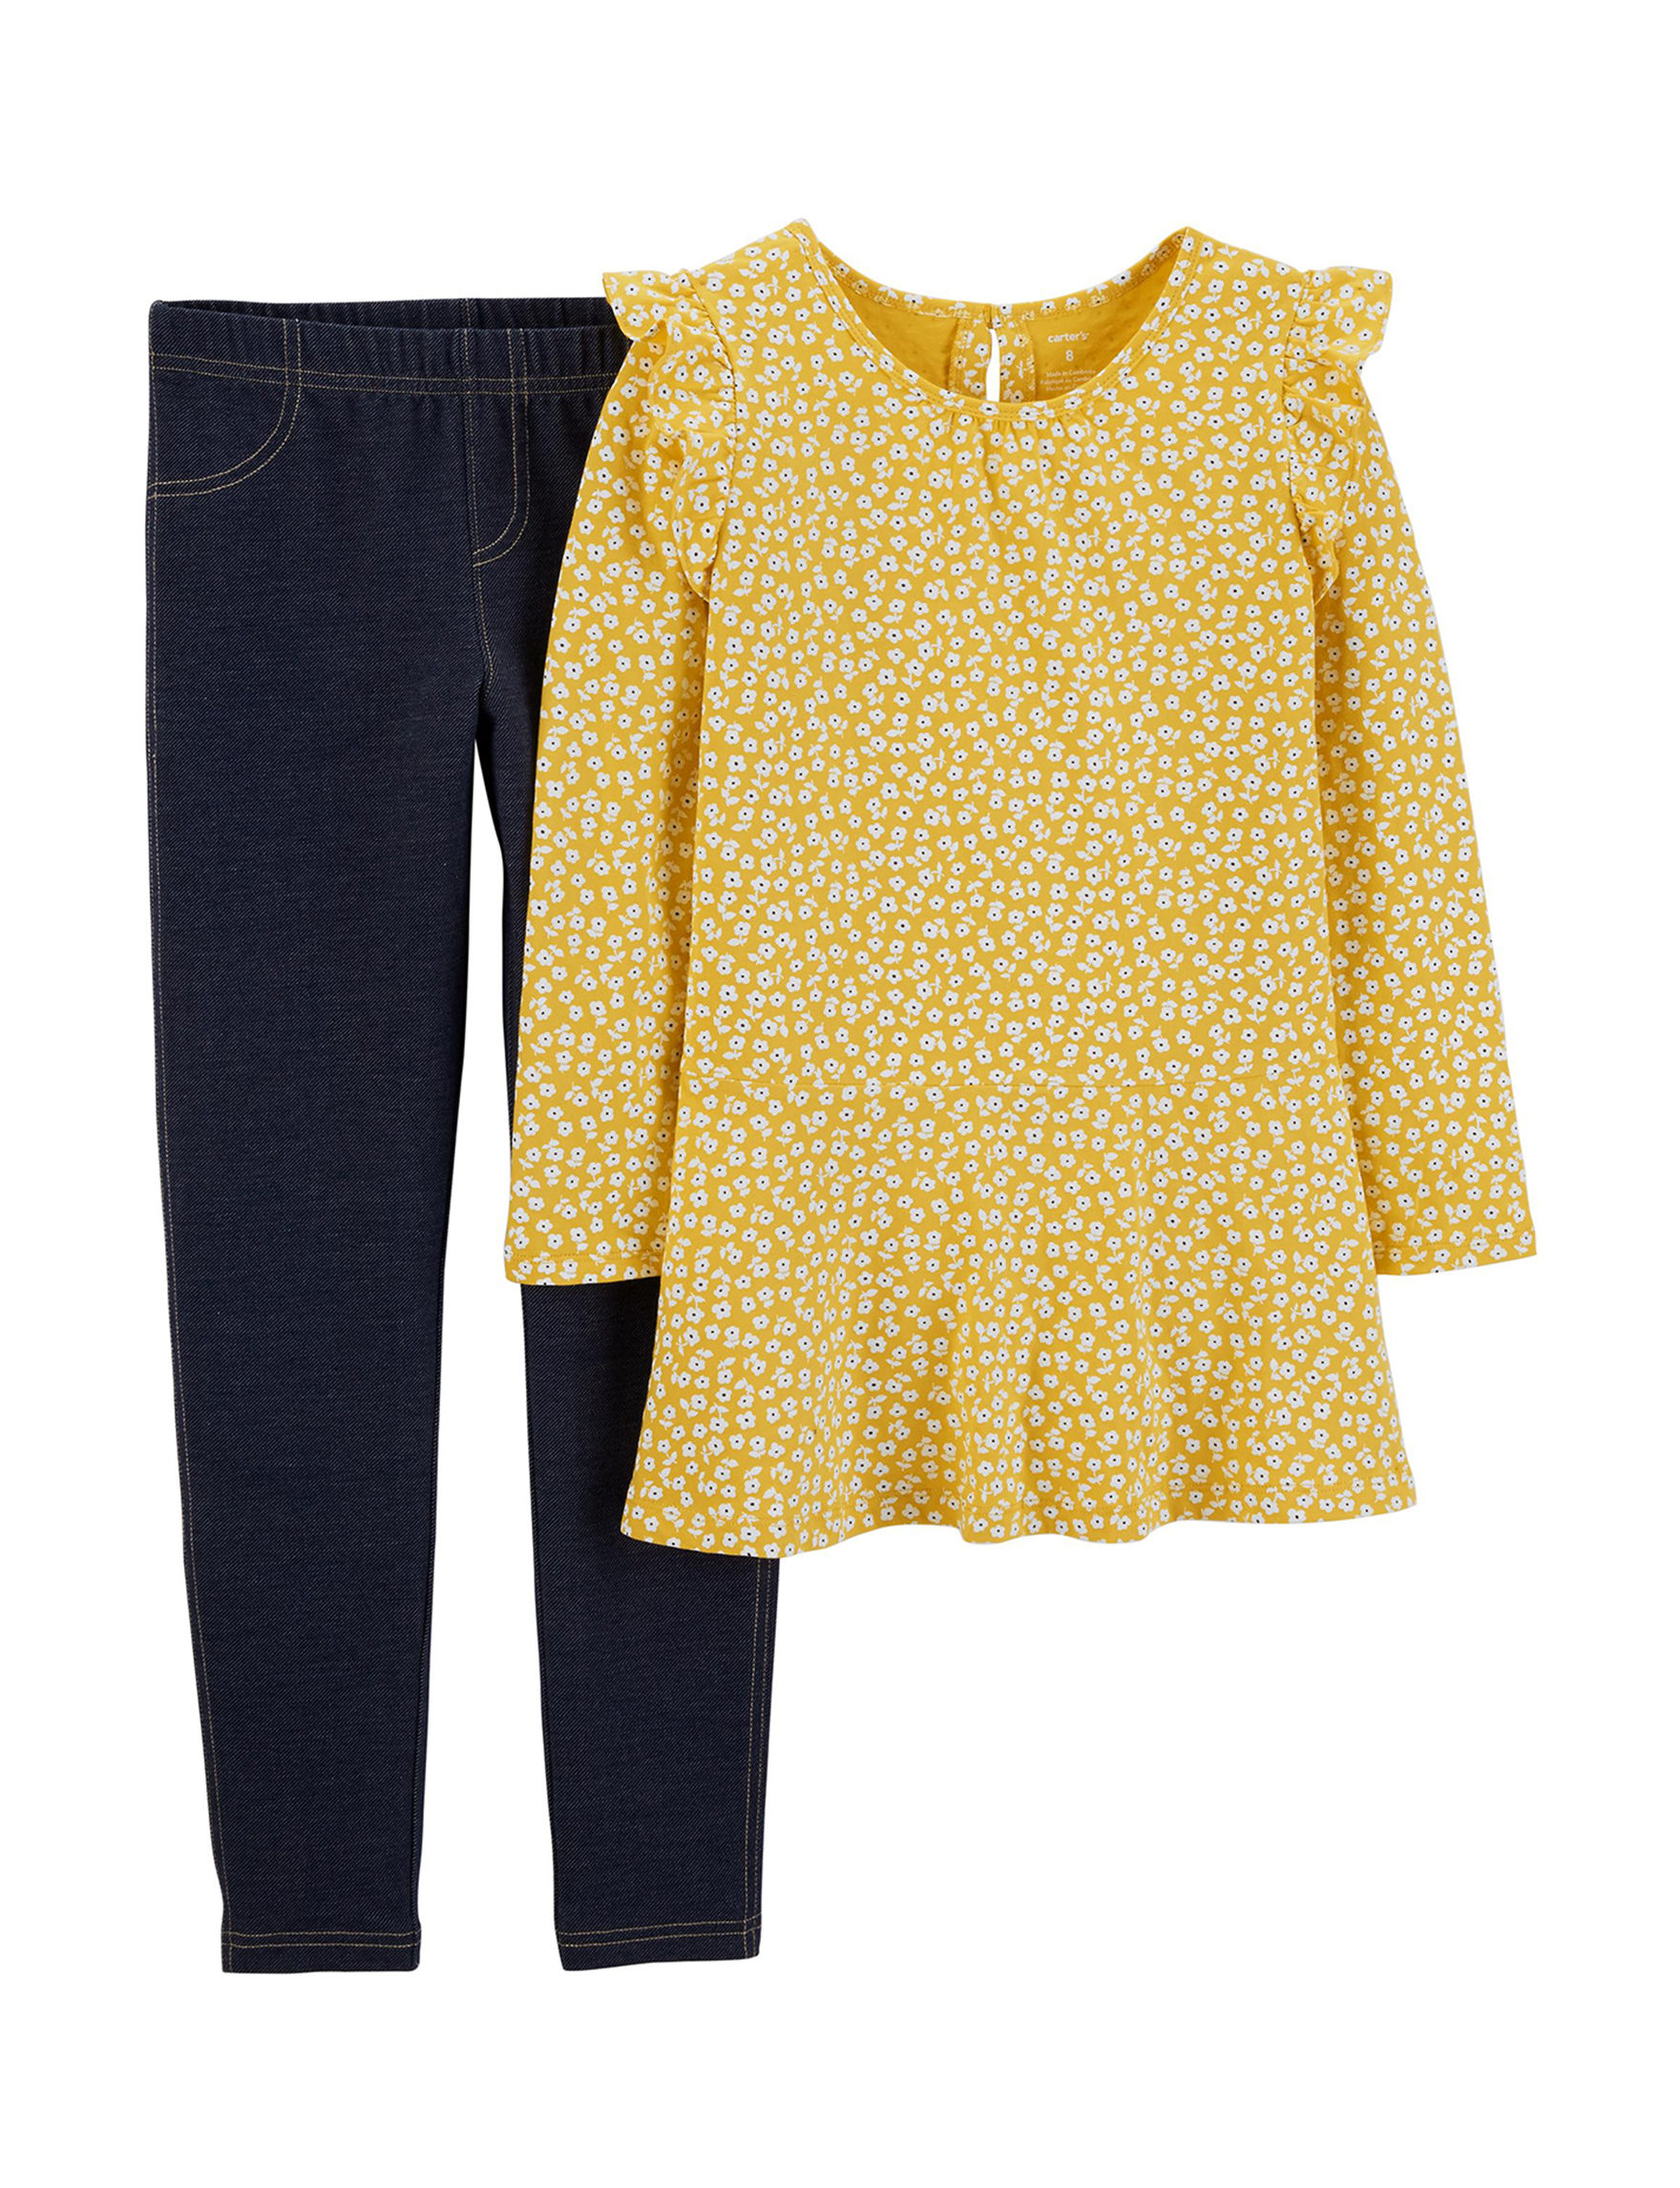 Carter's Yellow Floral